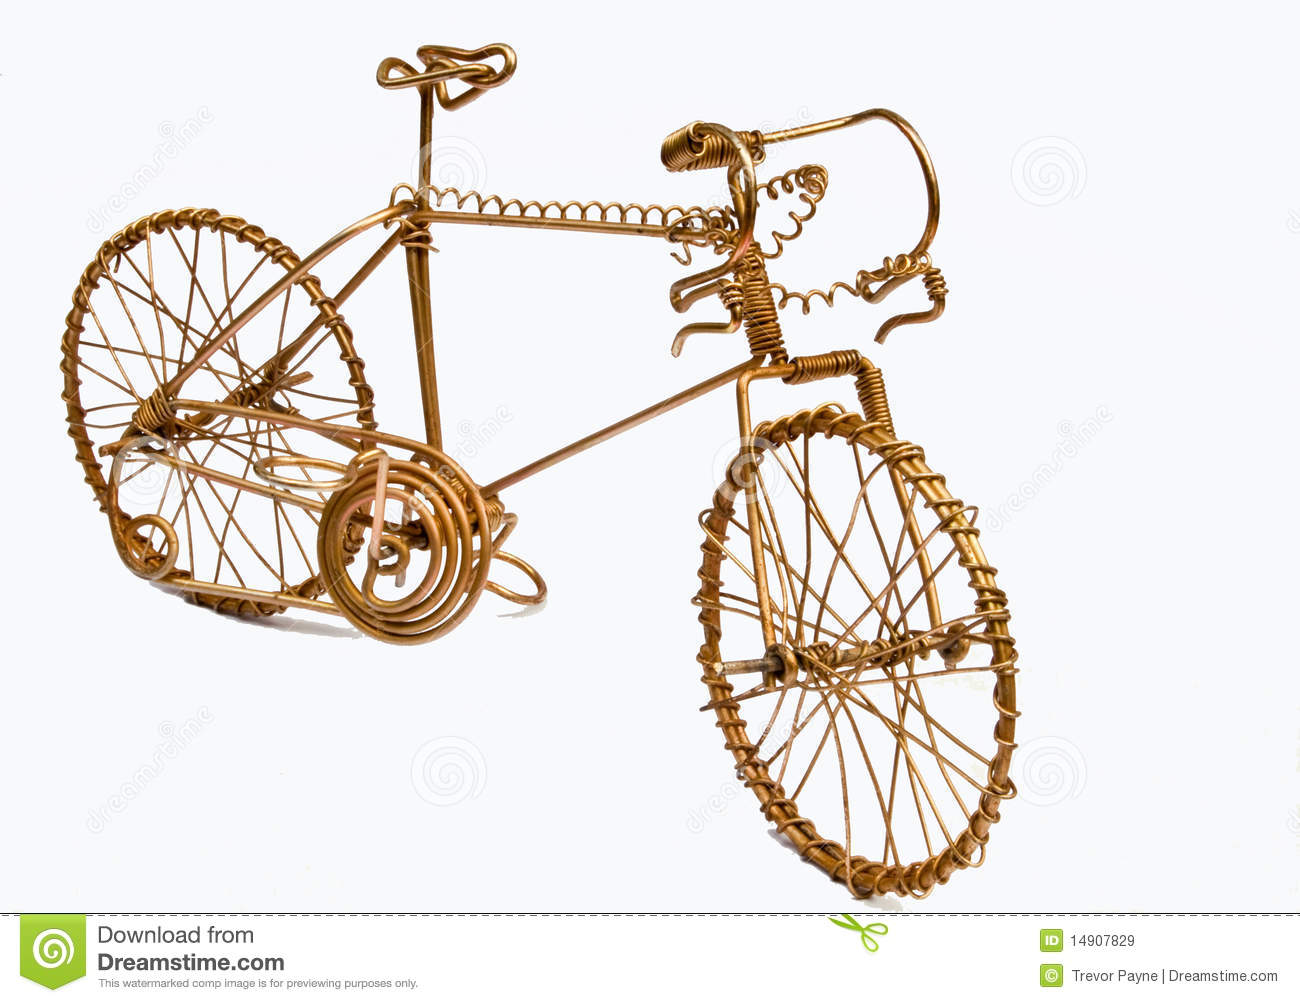 Draht Kunst Fahrrad Stock Photos - Download 282 Images